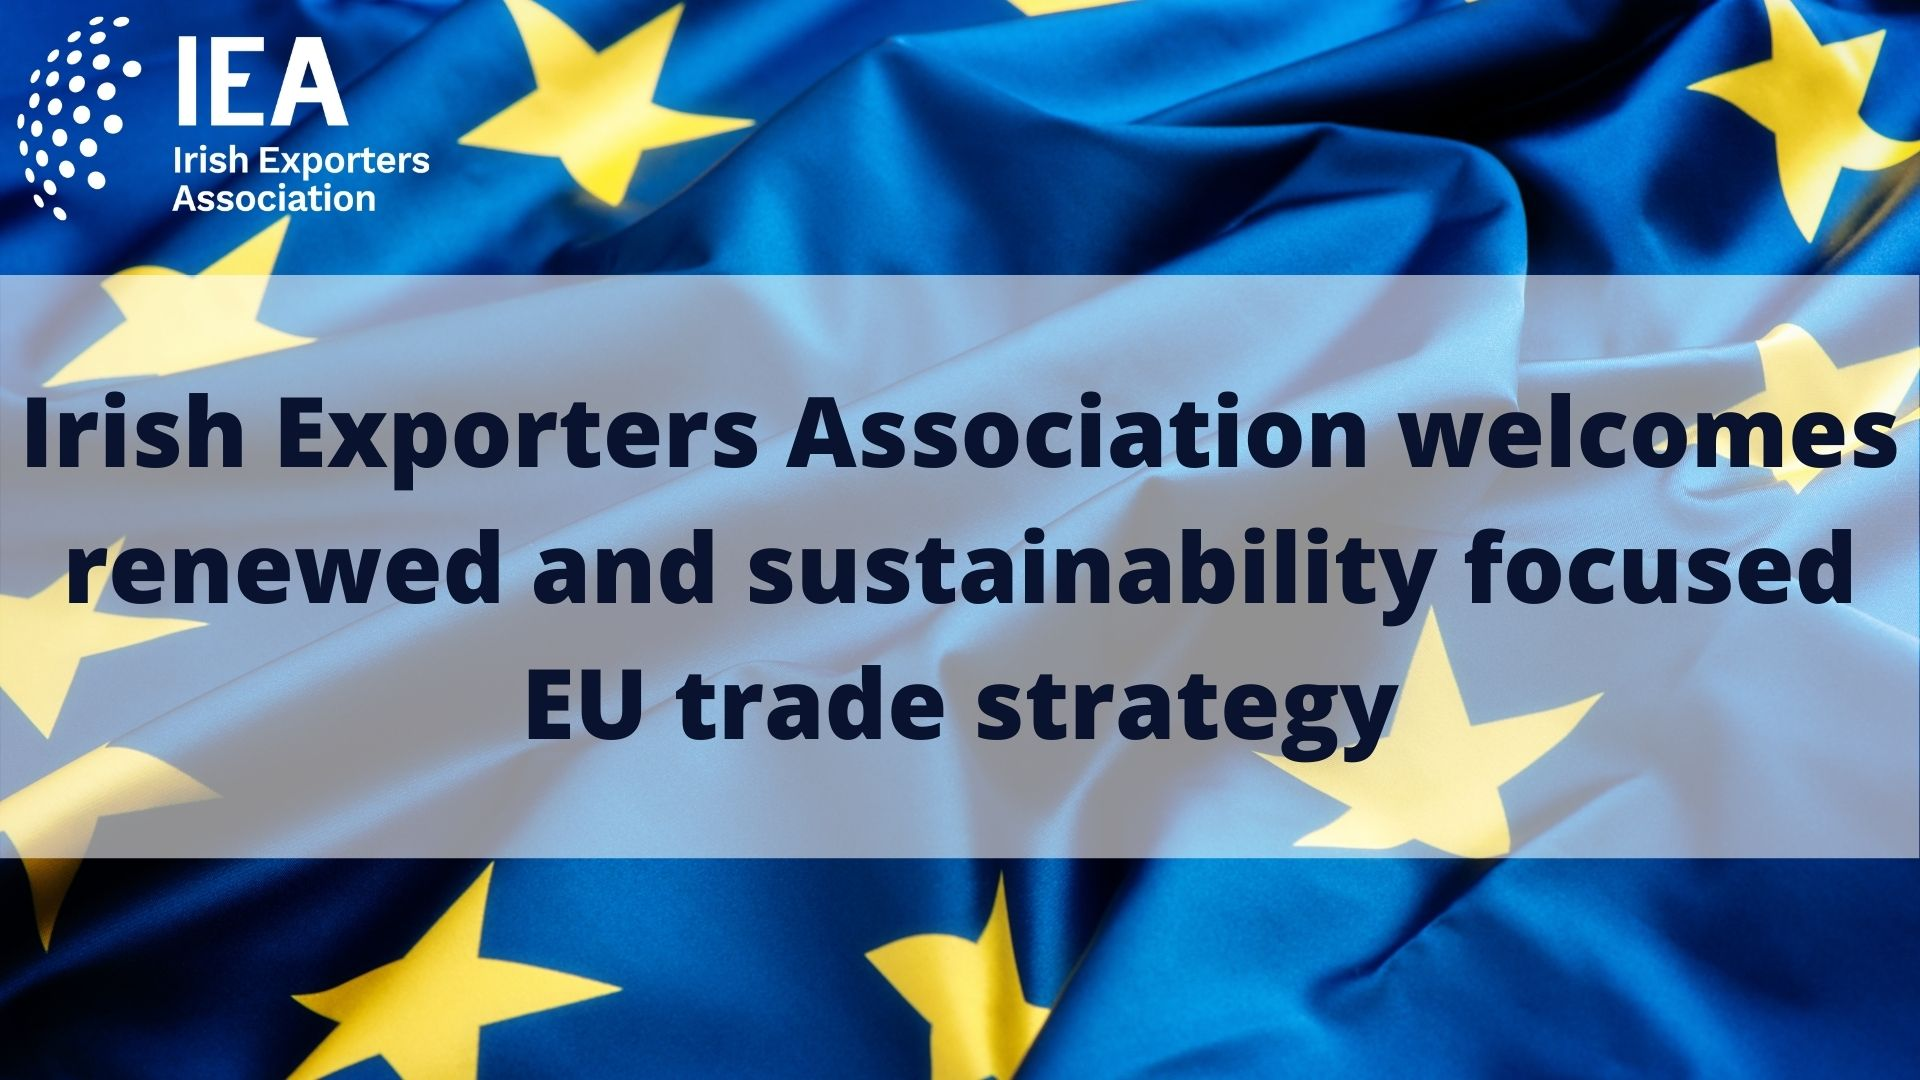 Irish Exporters Association welcomes renewed and sustainability focused EU trade strategy